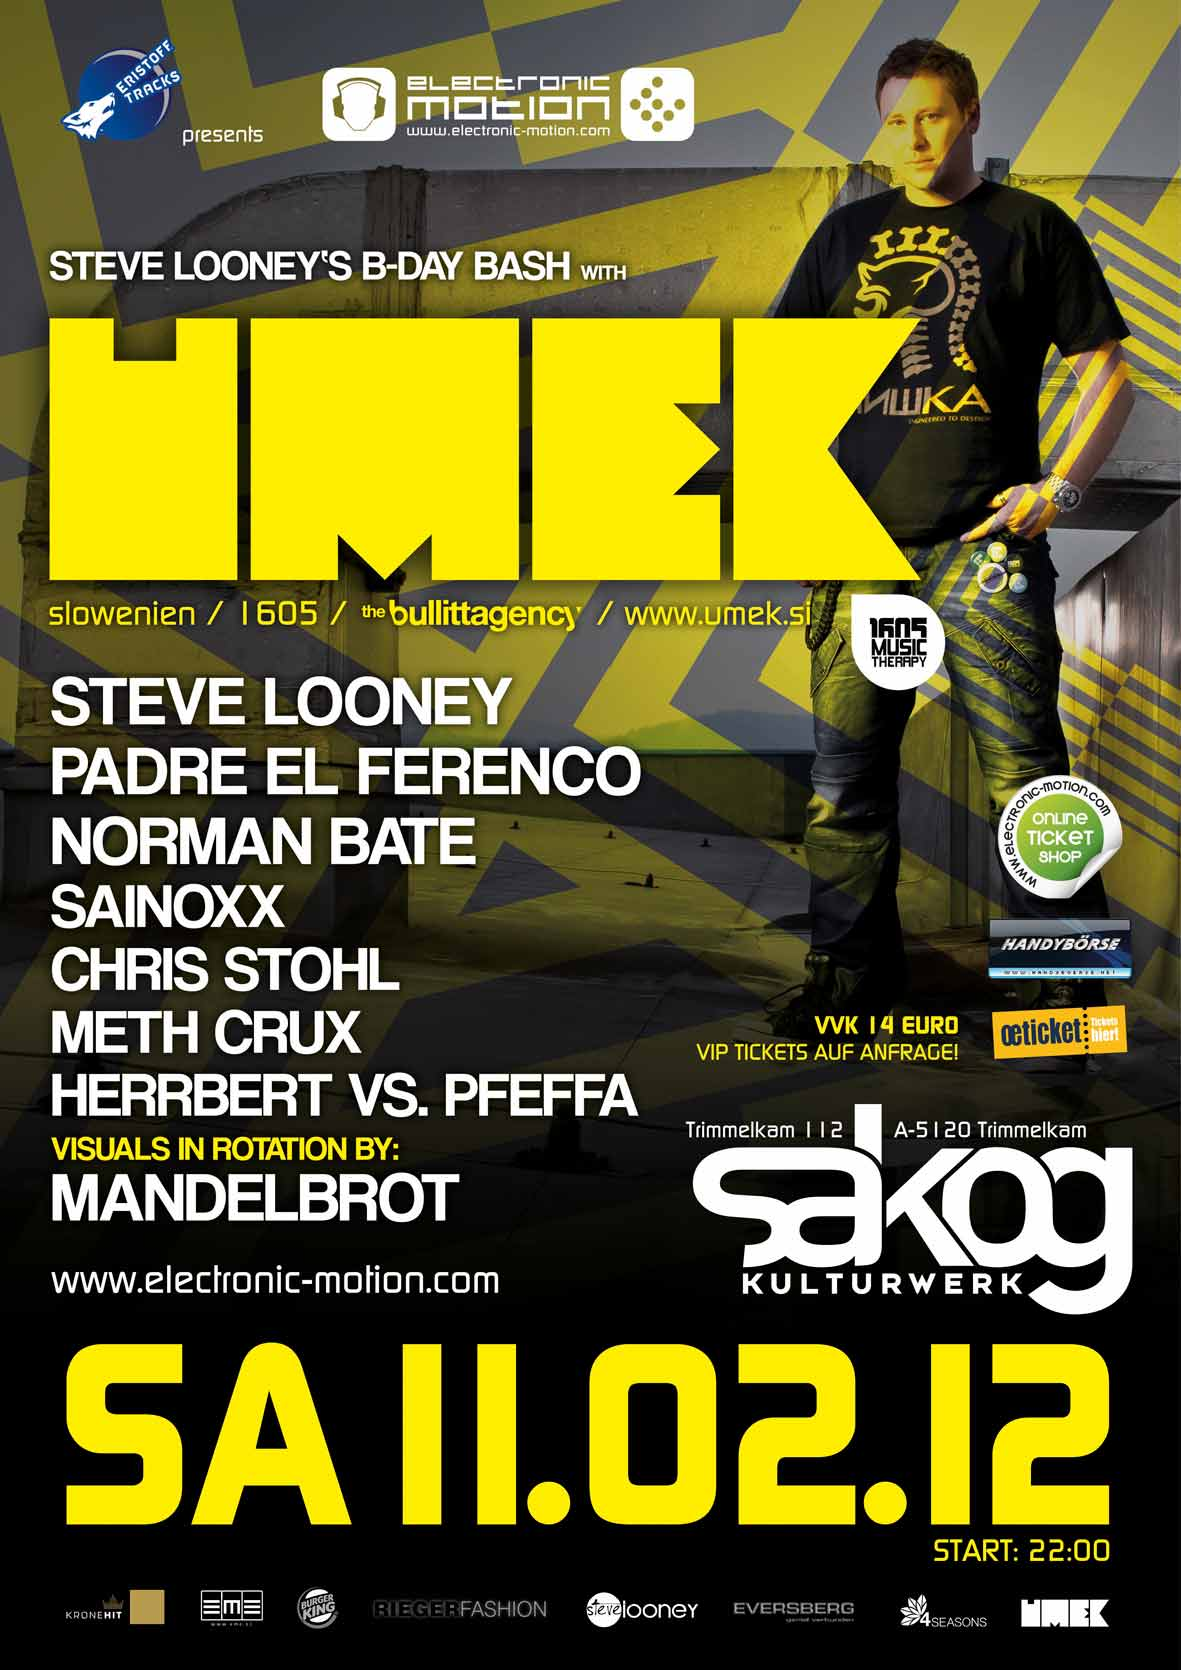 Steve Looney's B-DAY BASH with UMEK 11.02.2012 @ Sakog Trimmelkam